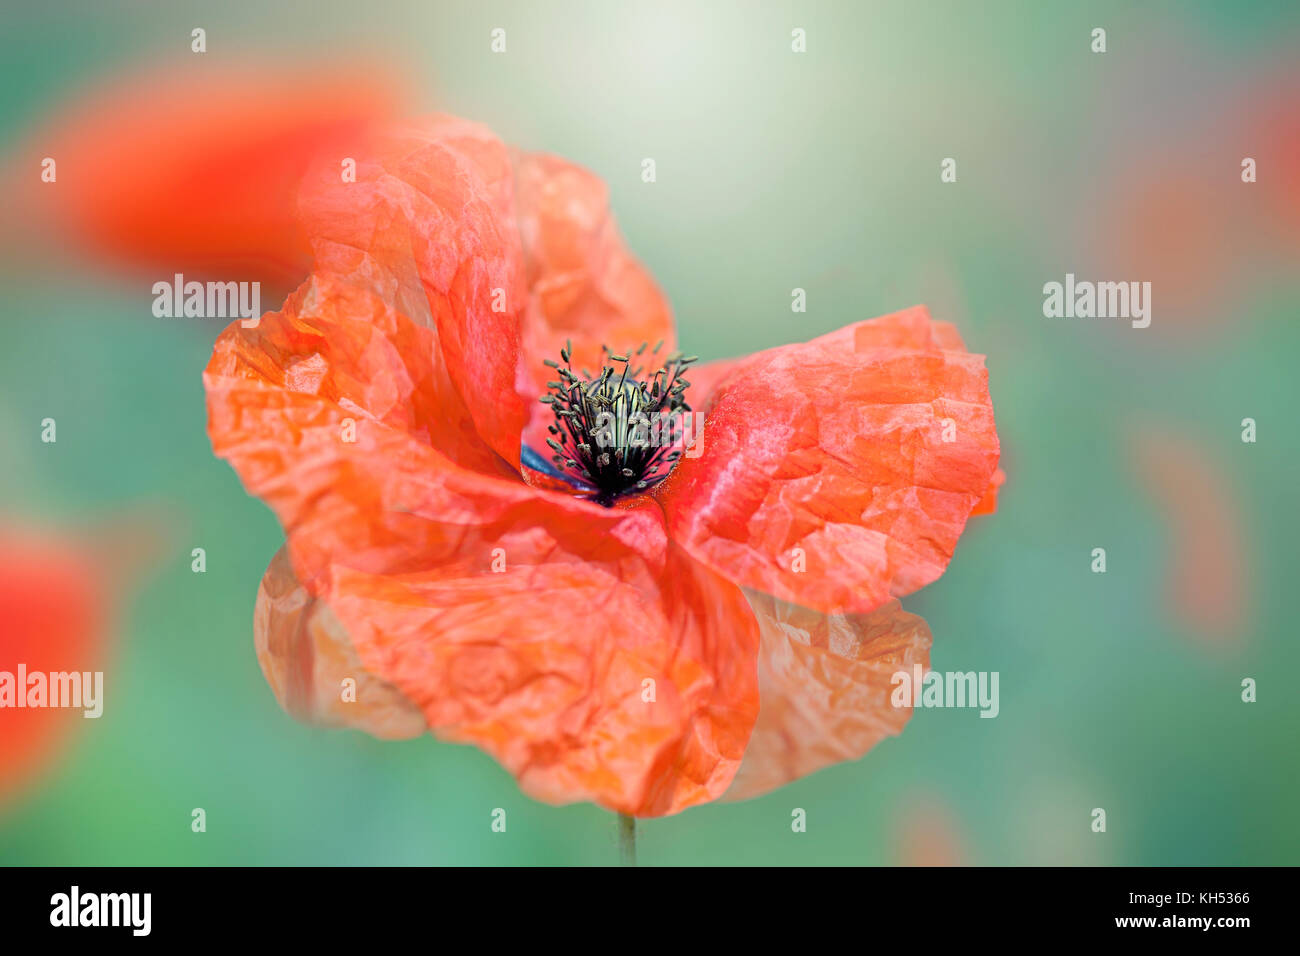 Close-up image of a single red poppy flower a symbol of remembrance on Armastice day - Stock Image